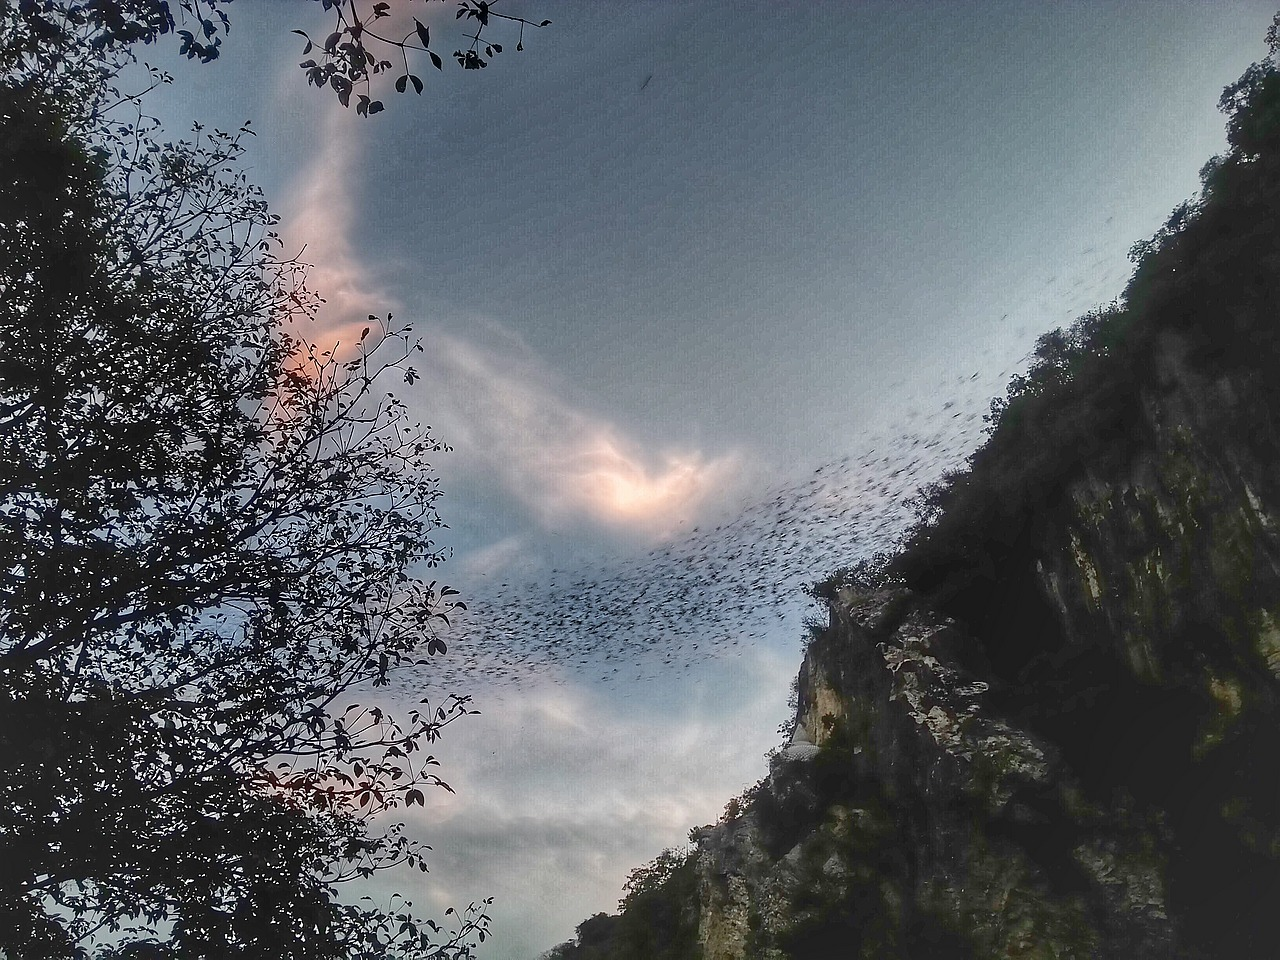 6 million bats leave this cave, every night!